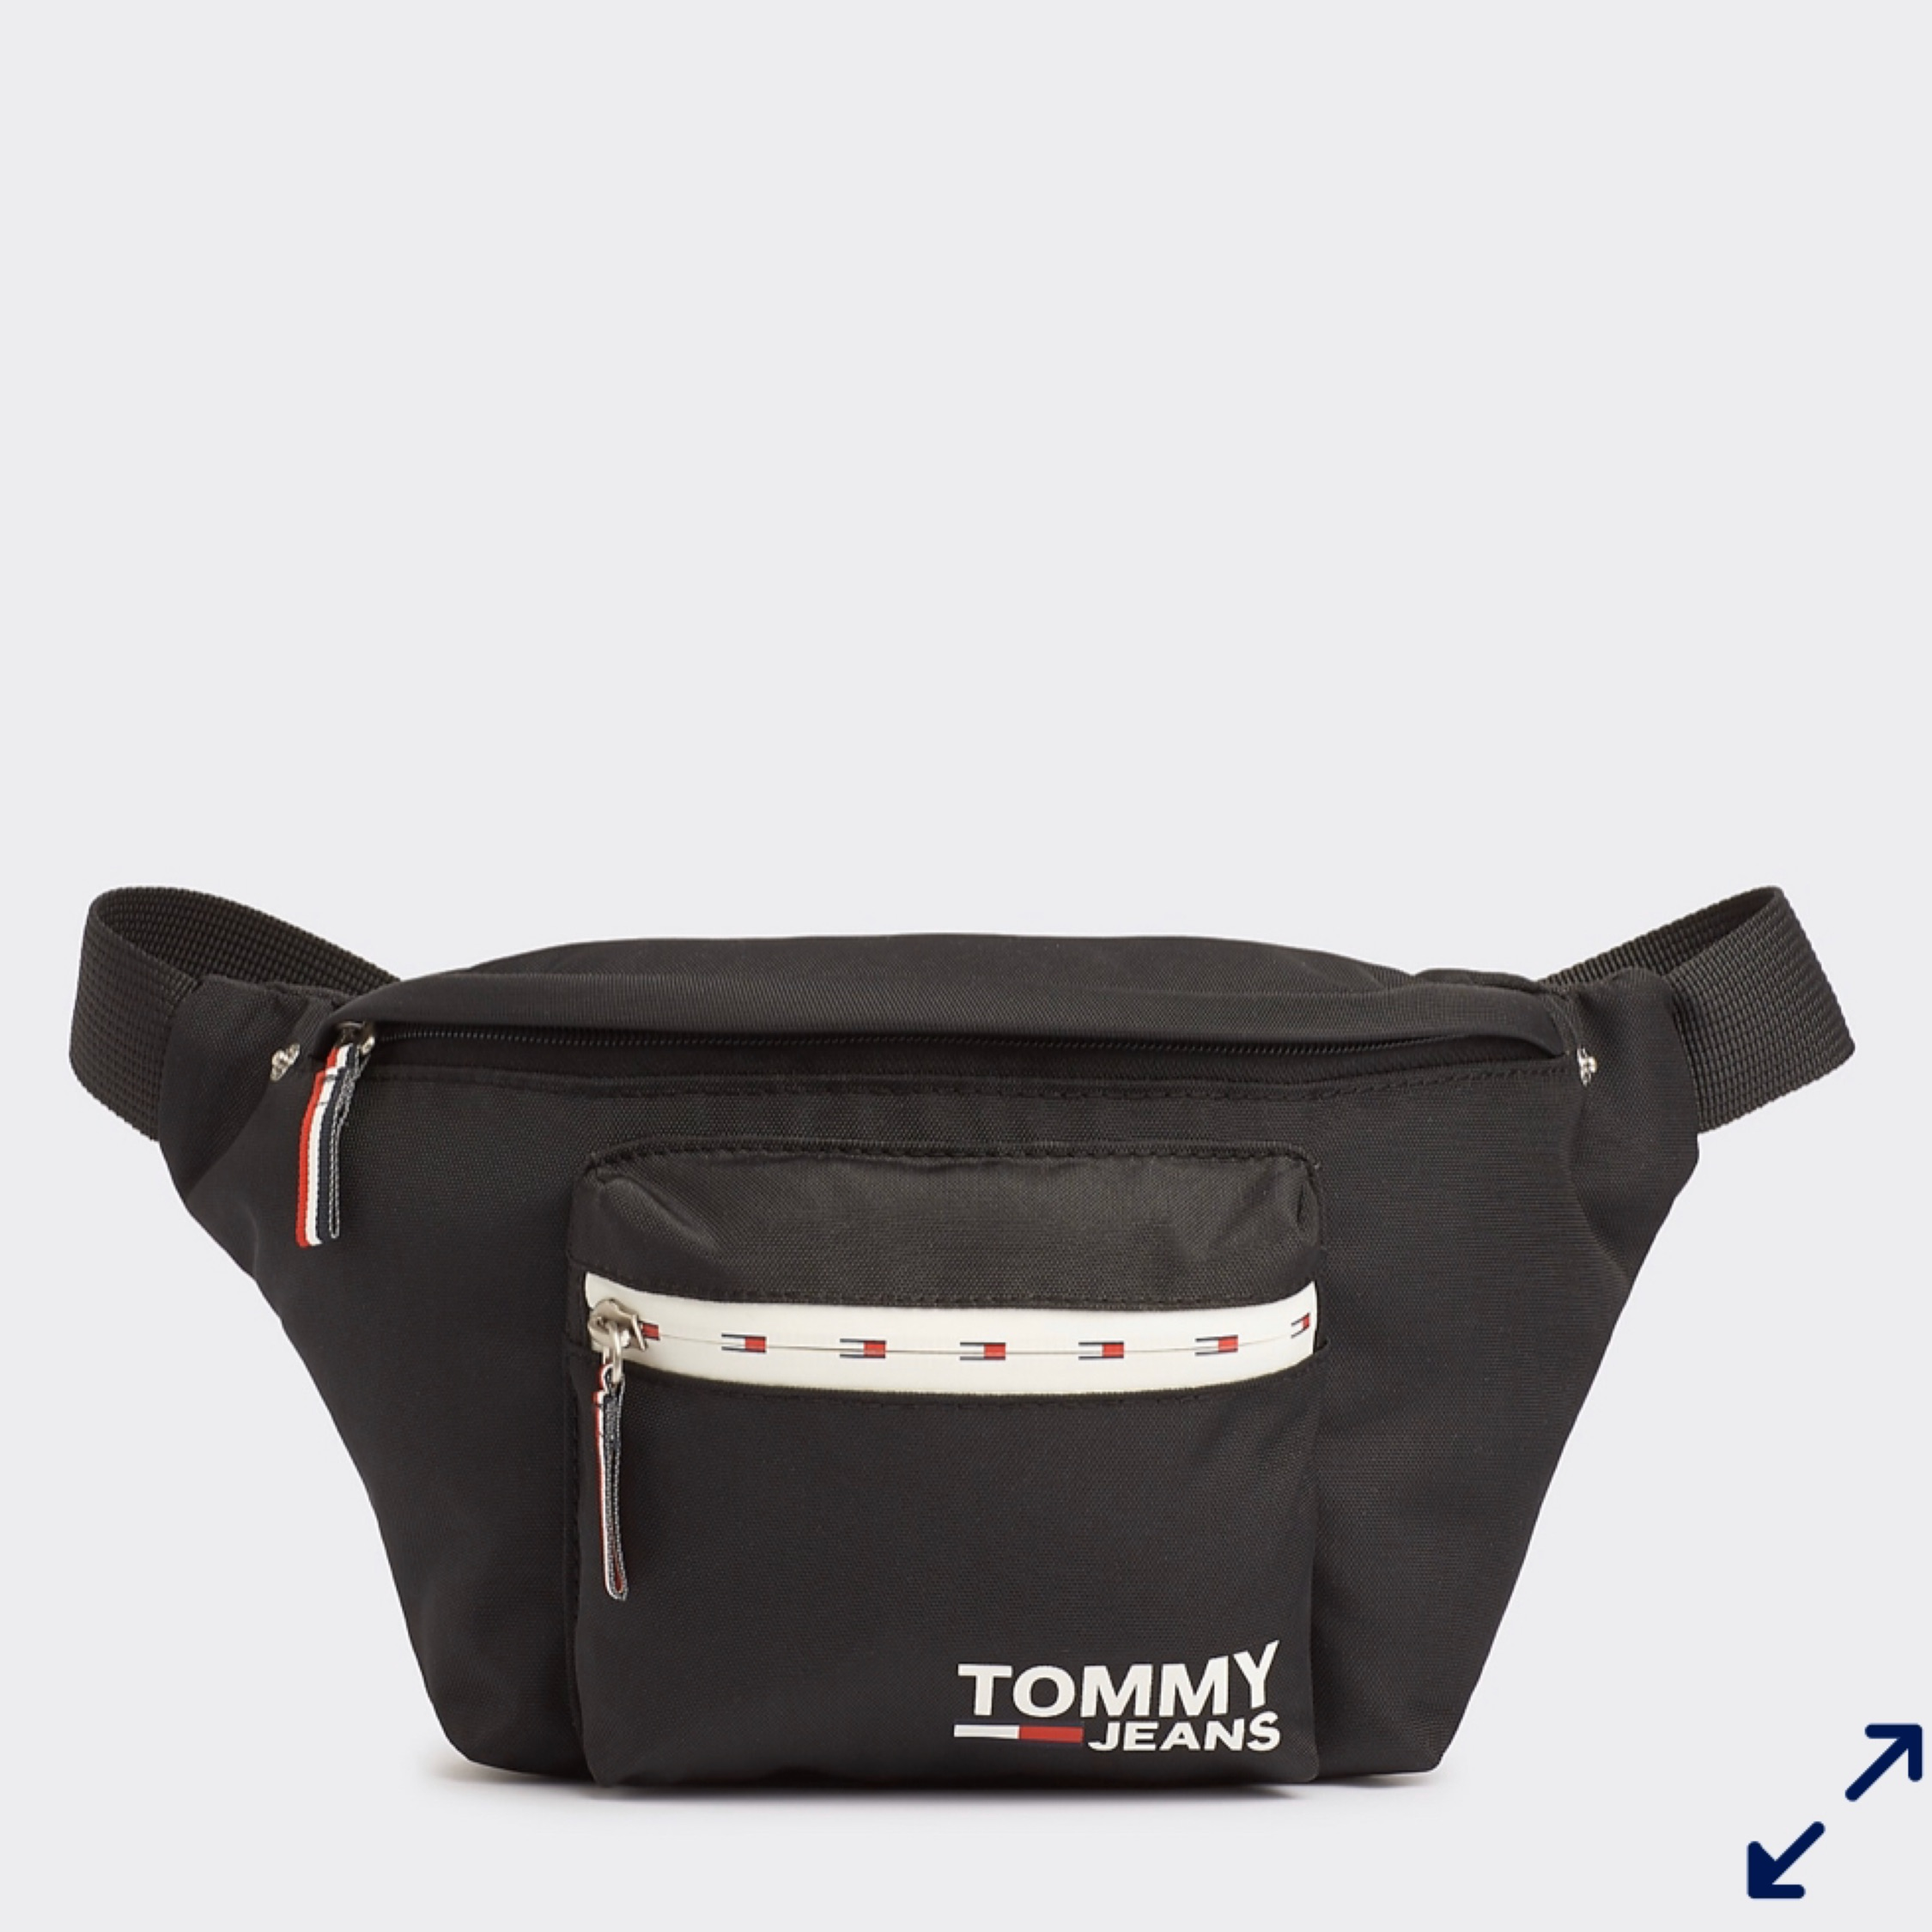 Tommy Jeans Cool City Bumbag Bnwt